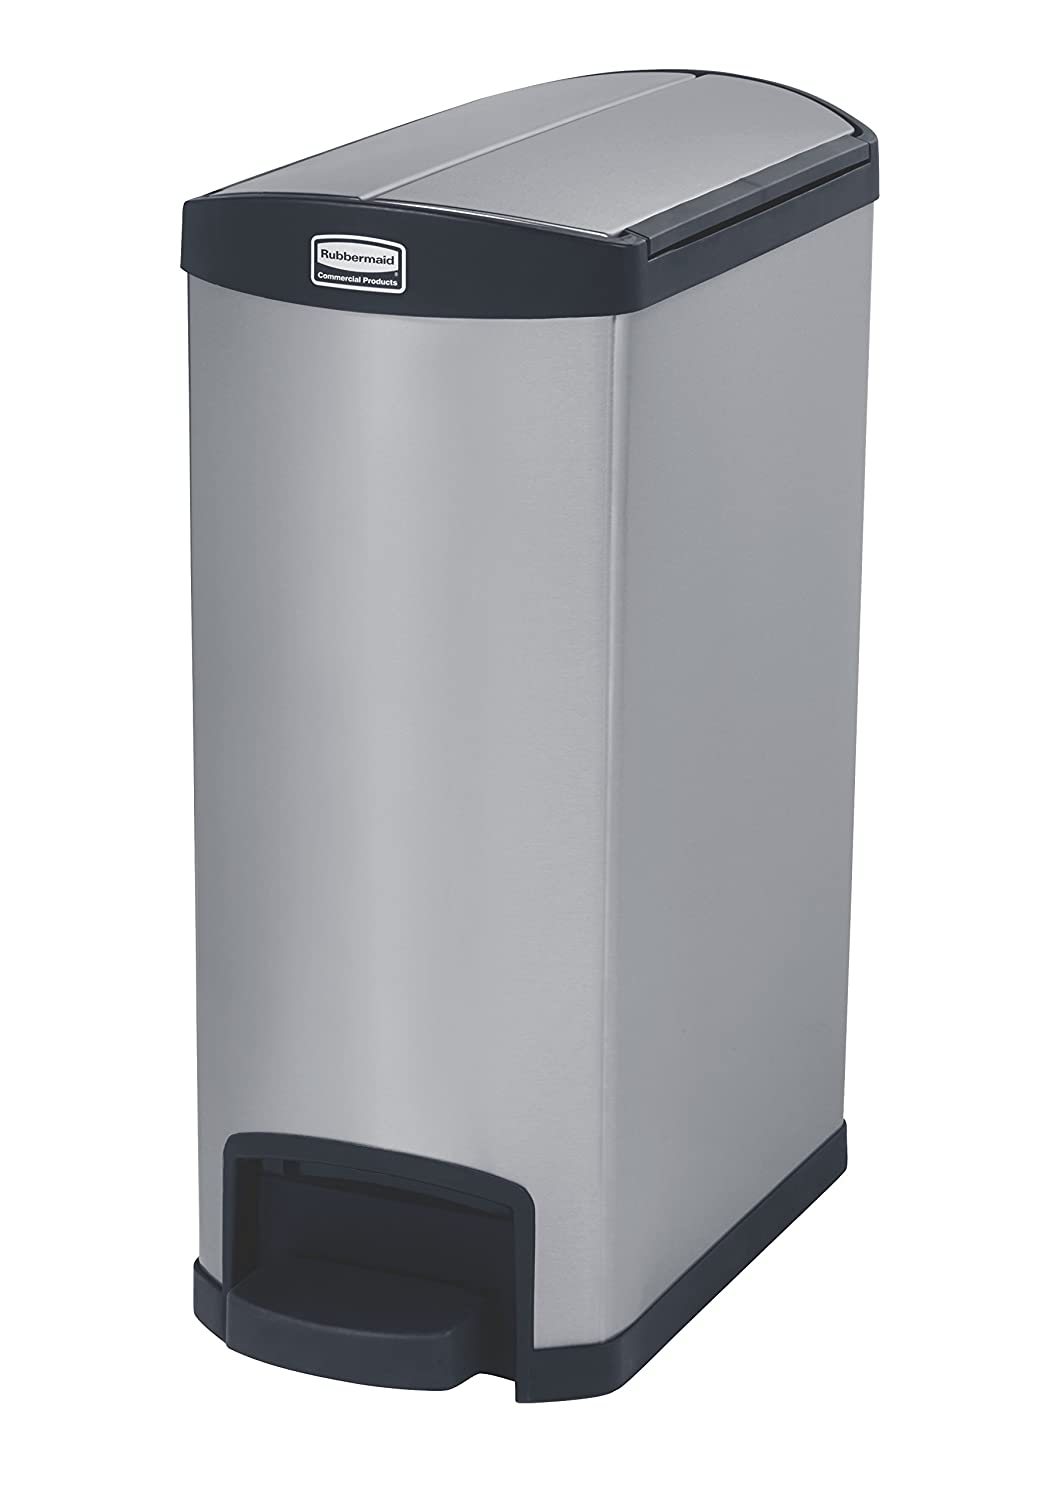 Rubbermaid Commercial 1901993 Slim Jim Stainless Steel Front Step-On Wastebasket, End-Step, 13-gallon, Black